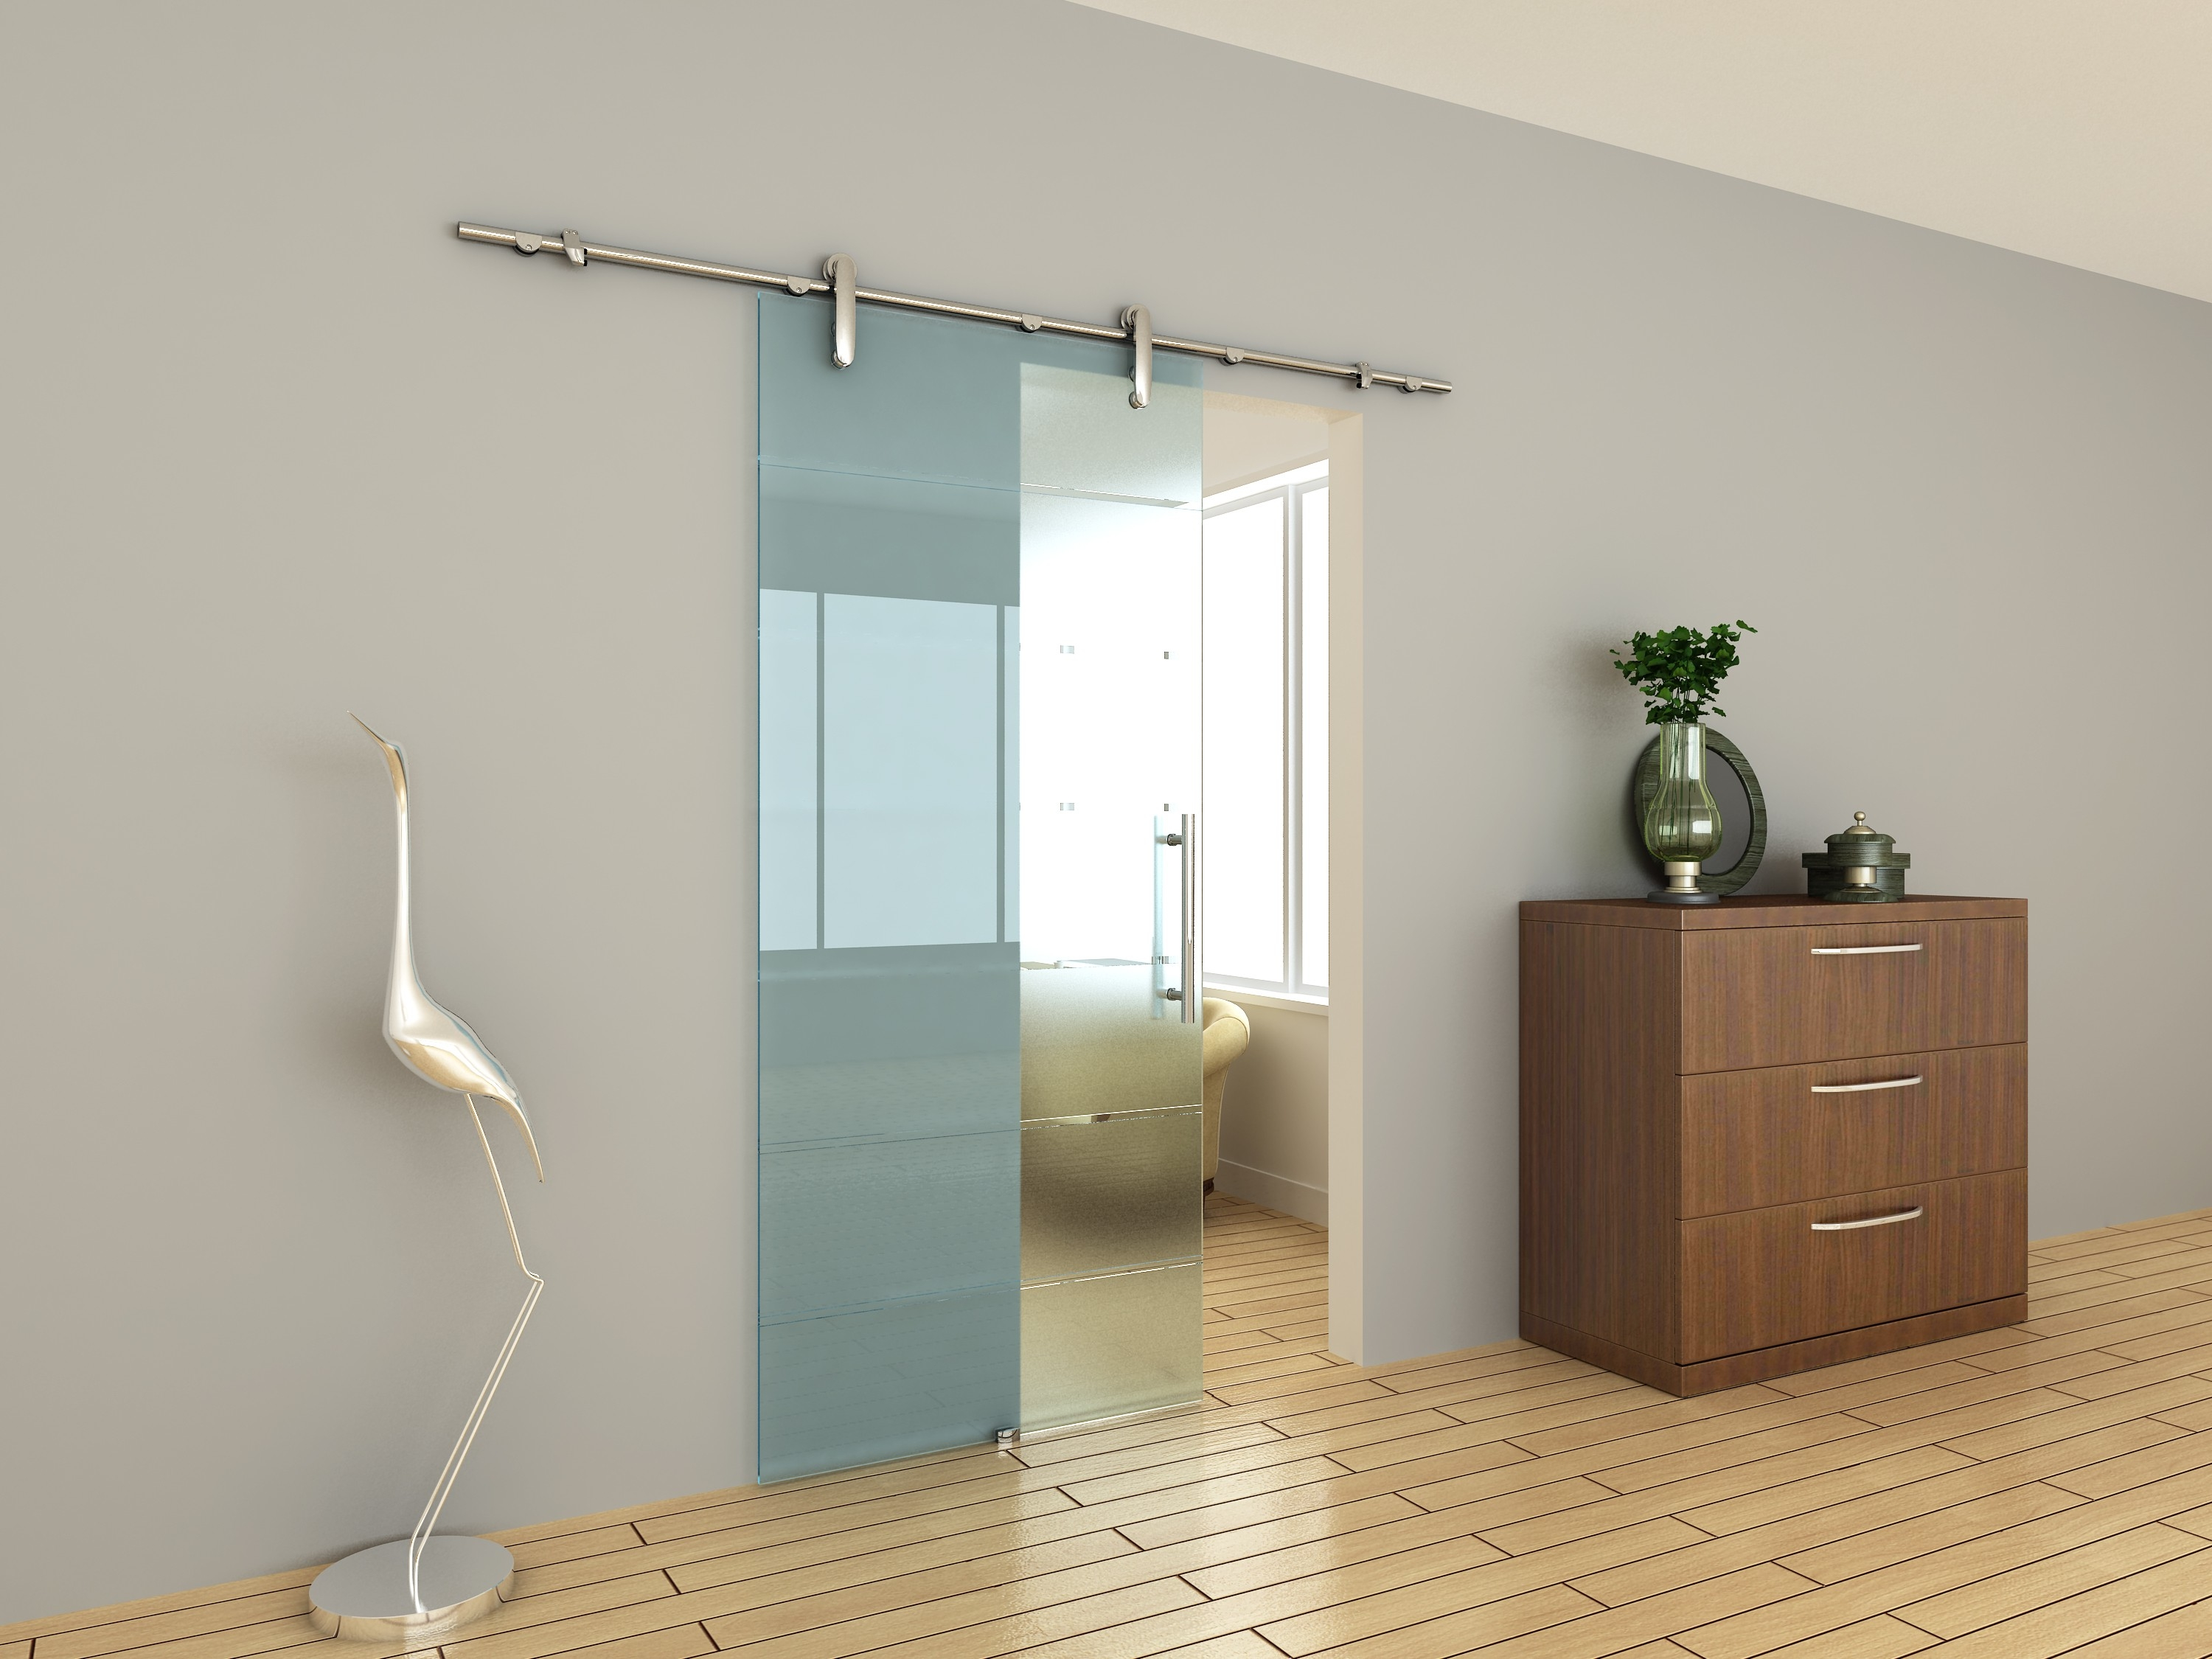 Sliding Doors On Bath